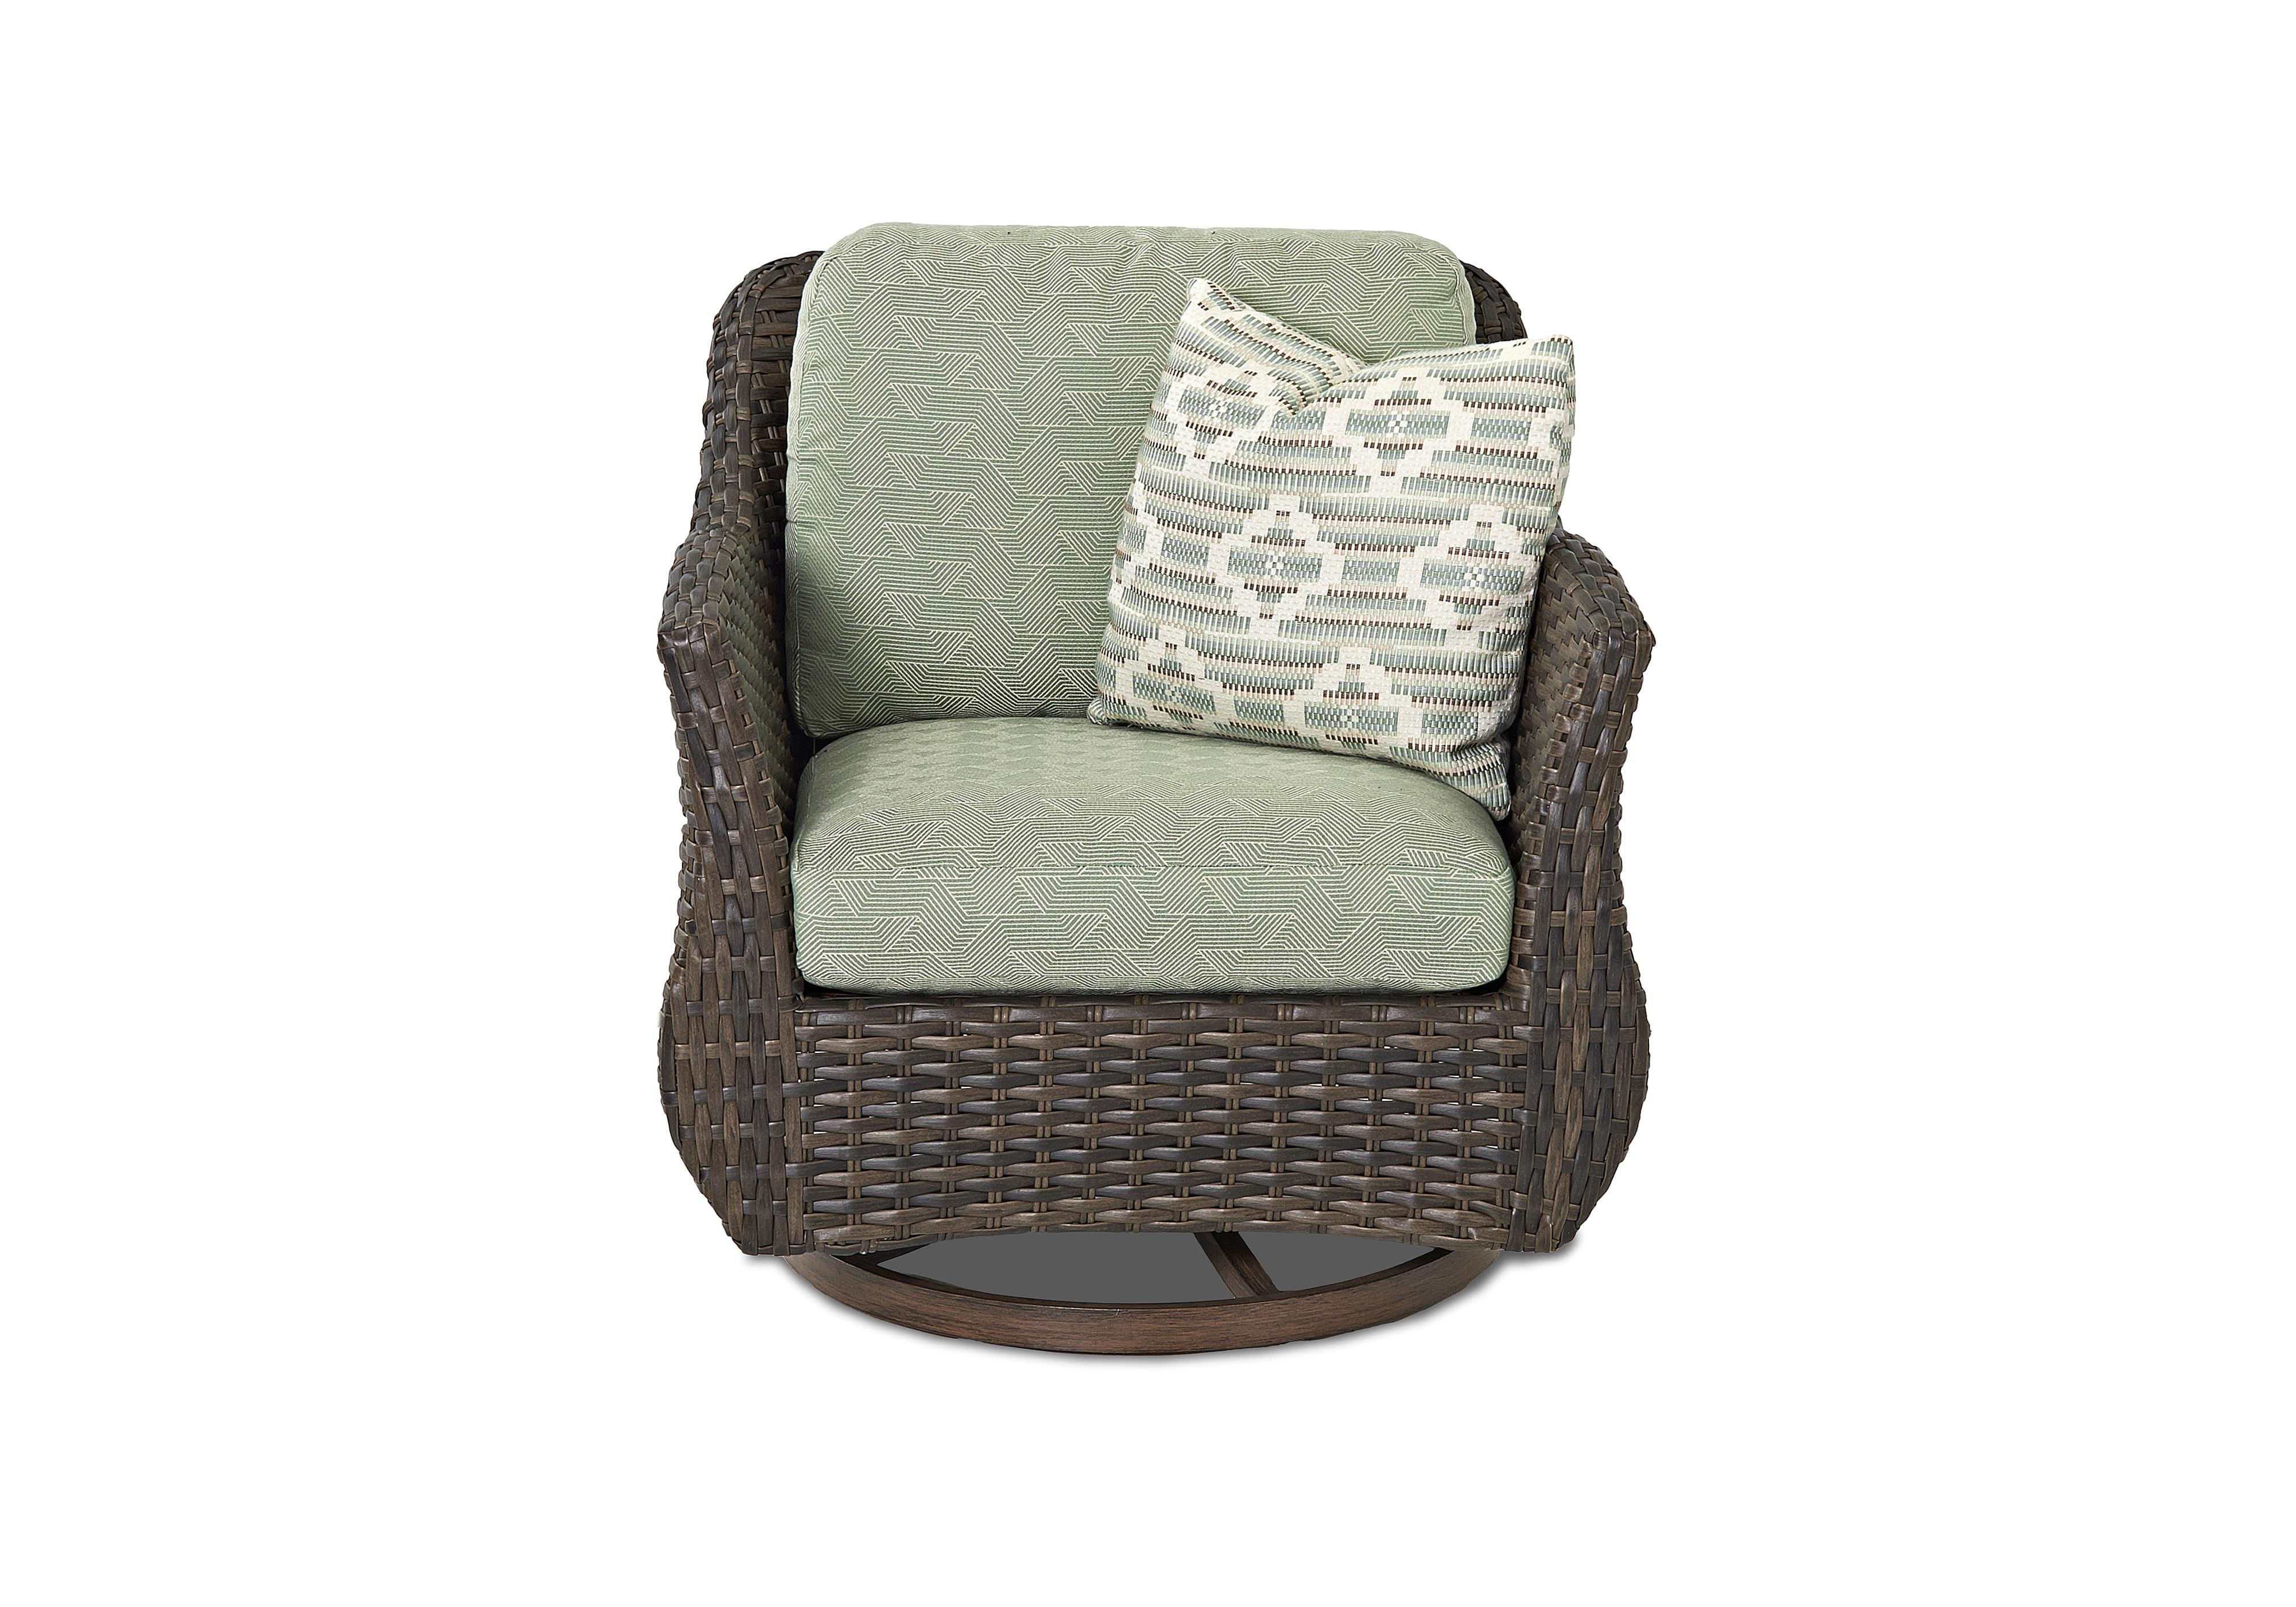 Sycamore Outdoor Swivel Glider Chair by Klaussner Outdoor at Rooms for Less